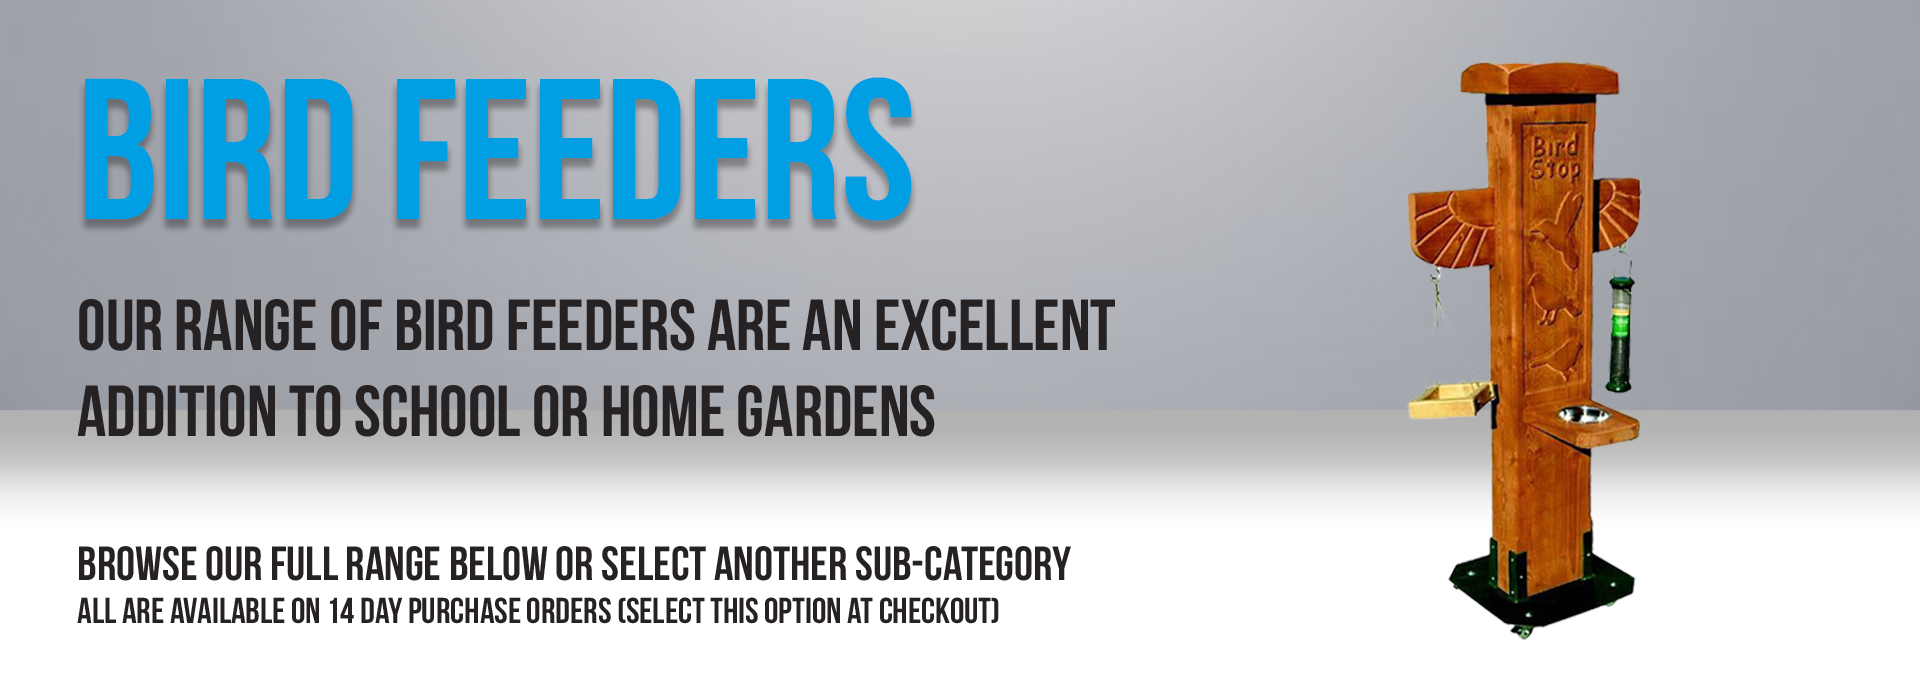 category-bird-feeders-banner.png